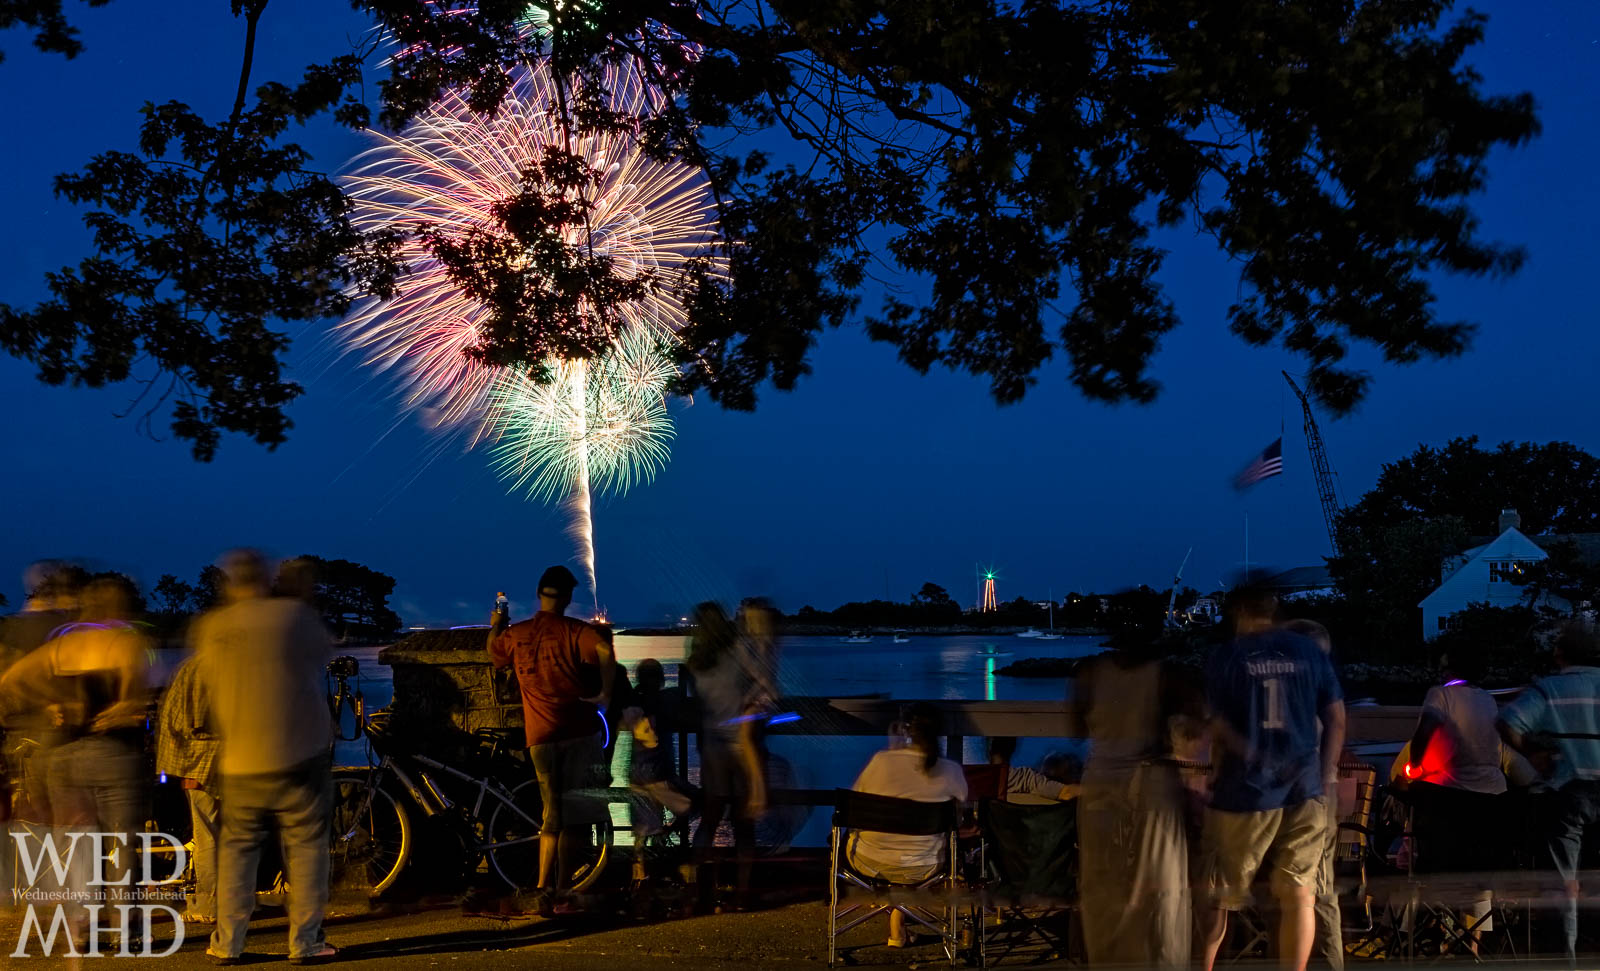 Marblehead Fireworks Finale – The Crowd on Beacon Street